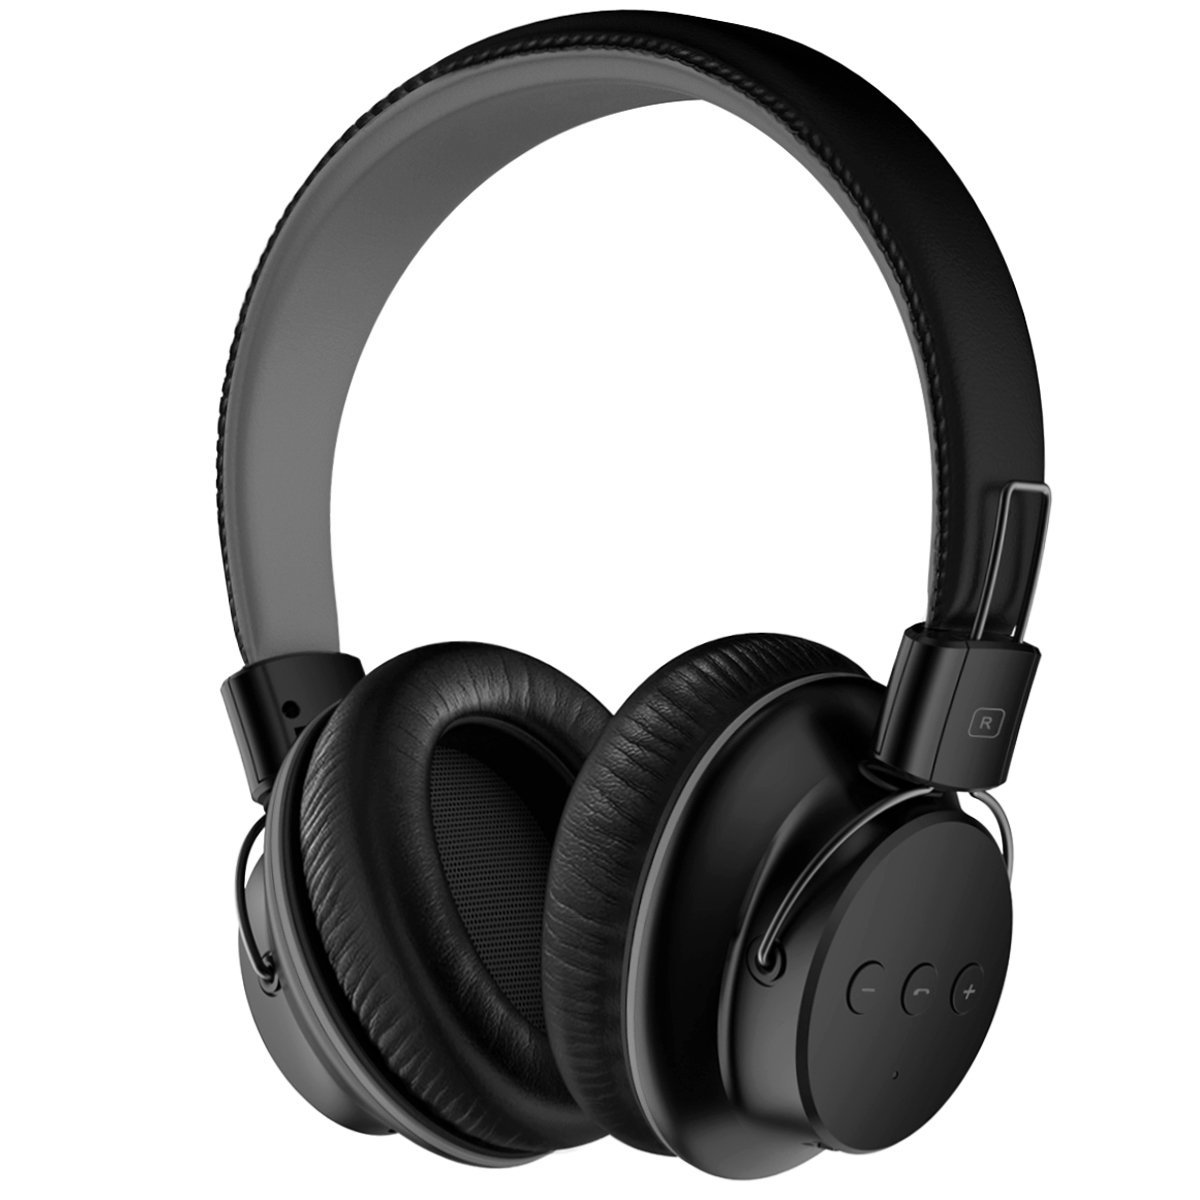 Mpow H1 Bluetooth Headphones Over Ear Lightweight, Comfortable for Prolonged Wearing, Hi-Fi Stereo Wireless Headphones, Foldable Headset w/Built-in Mic and Wired Mode for PC/Cell Phones